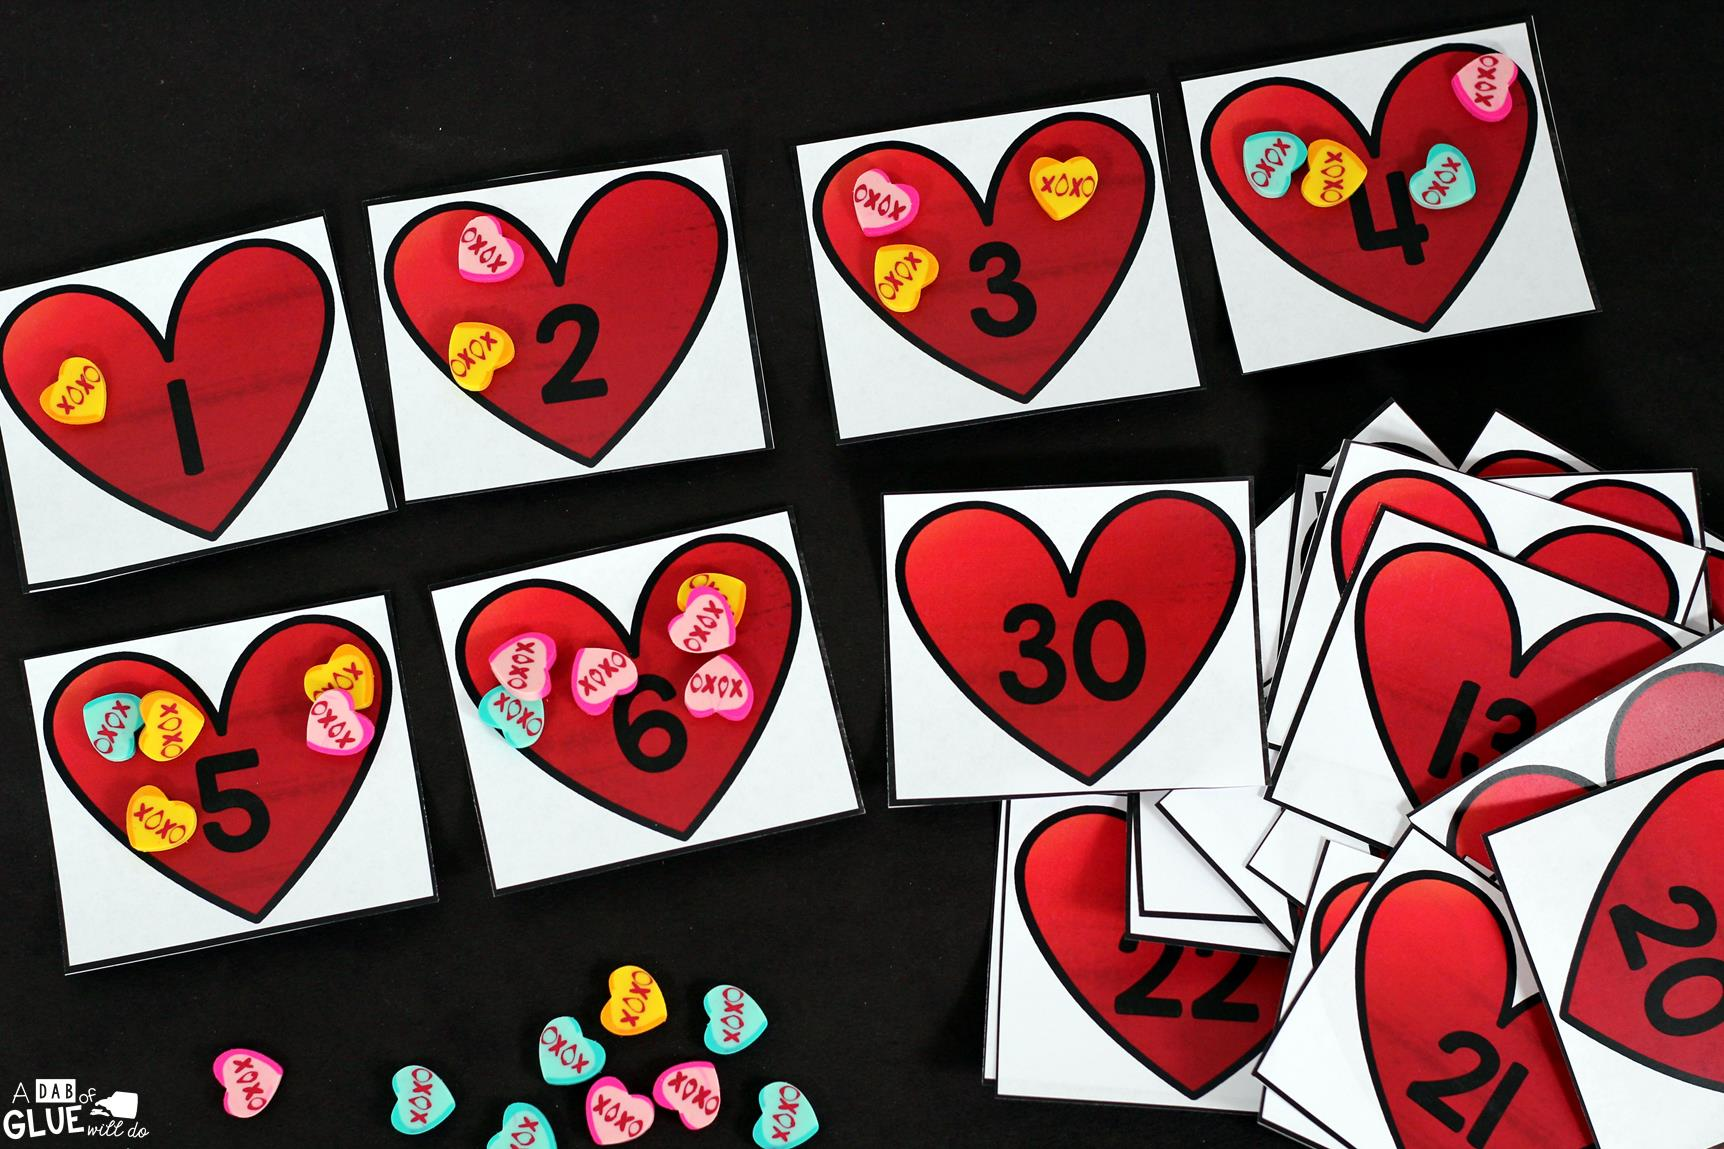 Valentine's Day Skip Counting Math Printable is a fun addition to your math centers. Perfect for math skip counting review! This free printable is perfect for preschool, kindergarten, and first grade students.